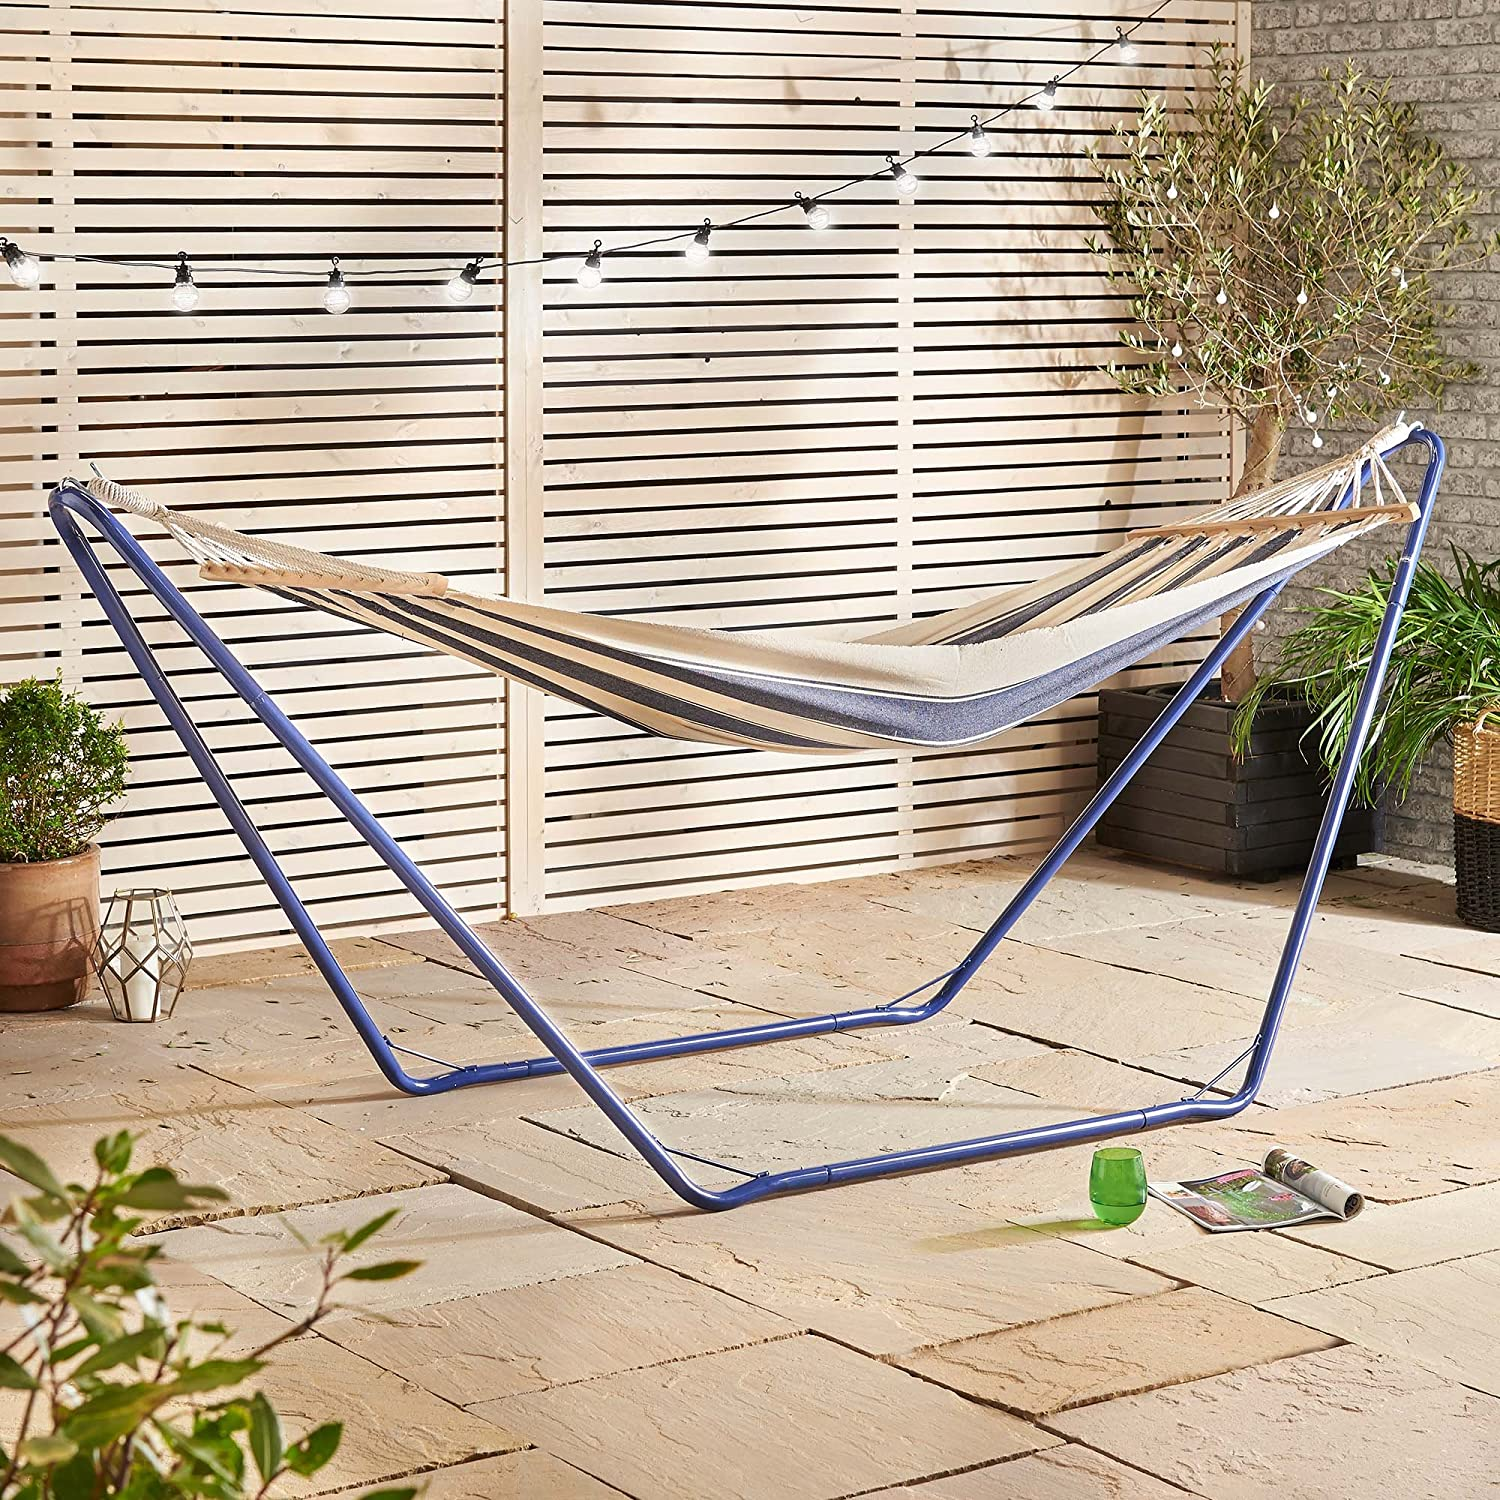 frame swing hxsxcknrxtrv durable hammock metal product china